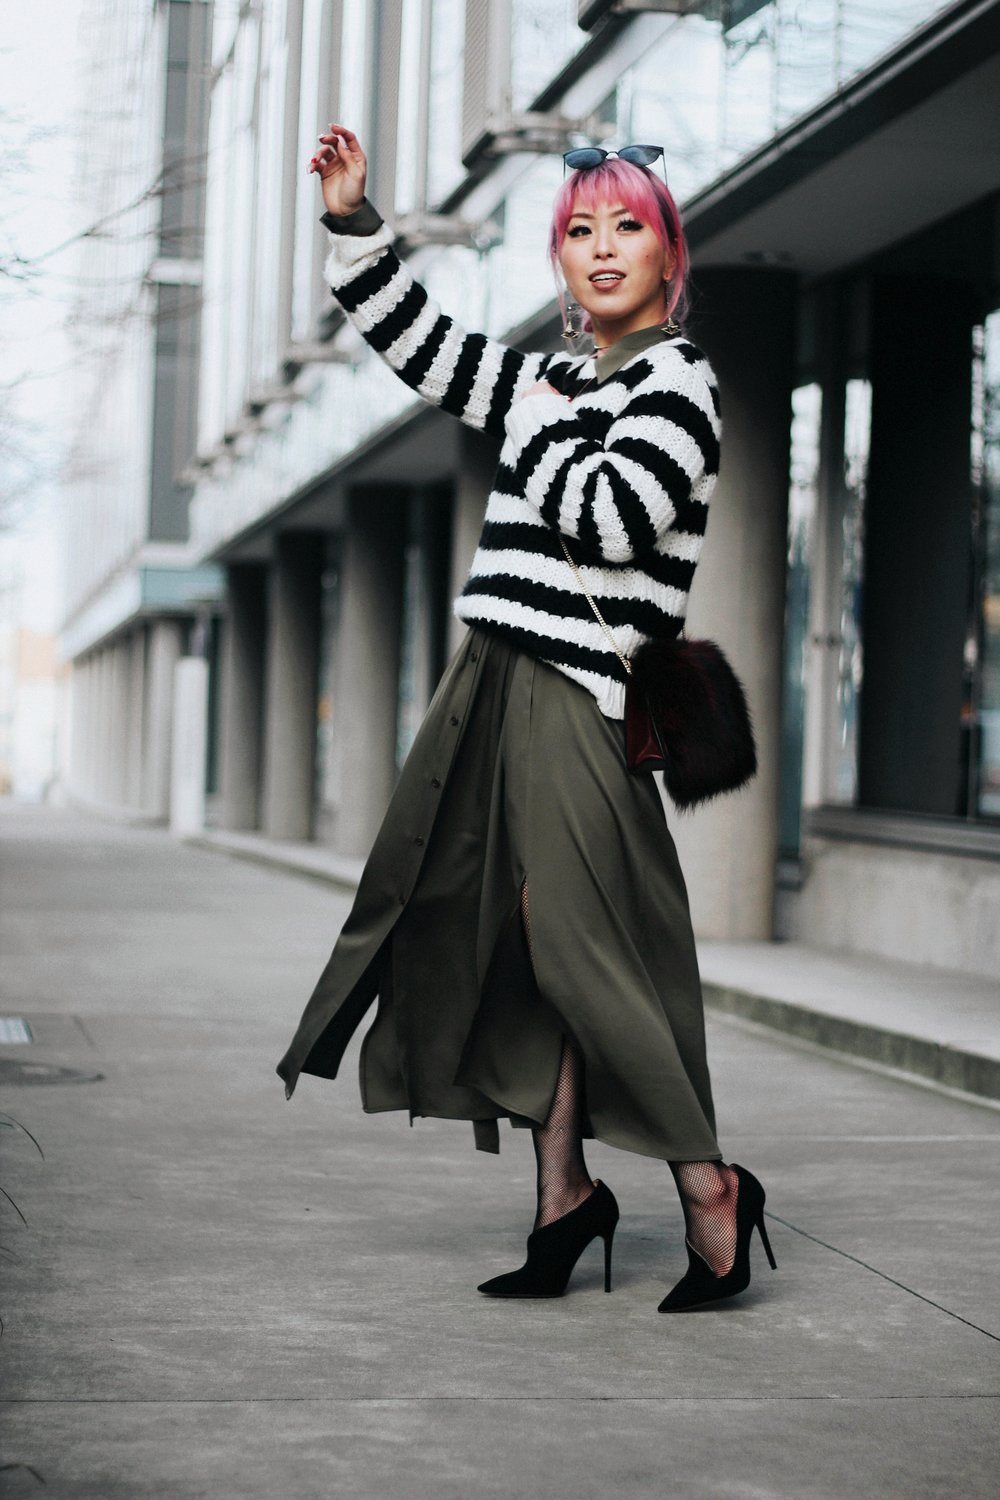 Who What Wear Striped Sweater_DVF Clarise Midi Shirt Dress_DVF Fur Bag_Kendra Scott Diana Shoulder Duster Earrings In Antique Brass_Amazon Fishnet Tights_ZARA ASYMMETRIC LEATHER HIGH HEEL SHOES_Aikas Love Closet_Seattle Fashion Blogger_japanese_Pink Hair 10